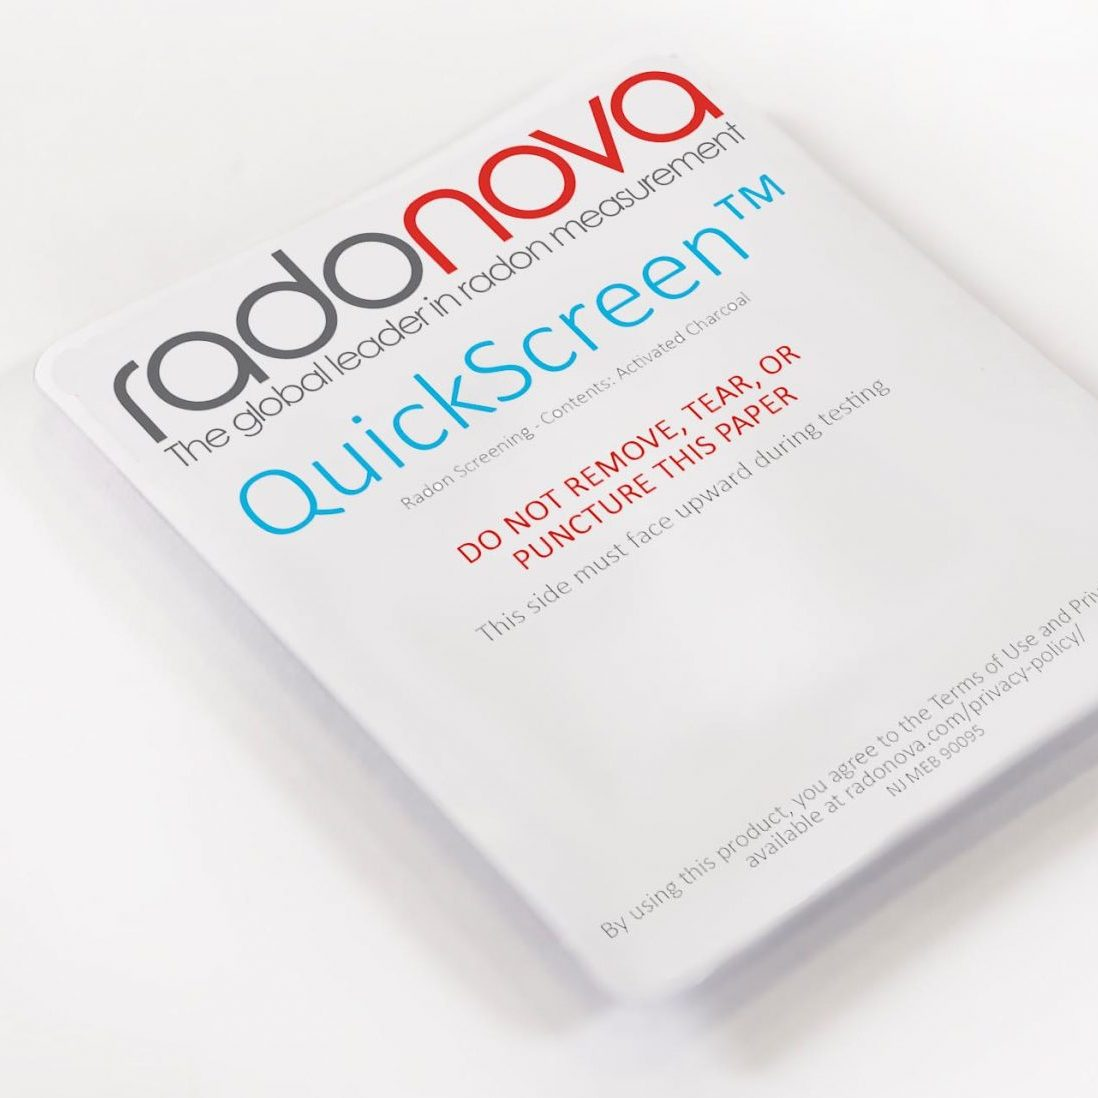 QuickScreen - Radon Screening Test Kit